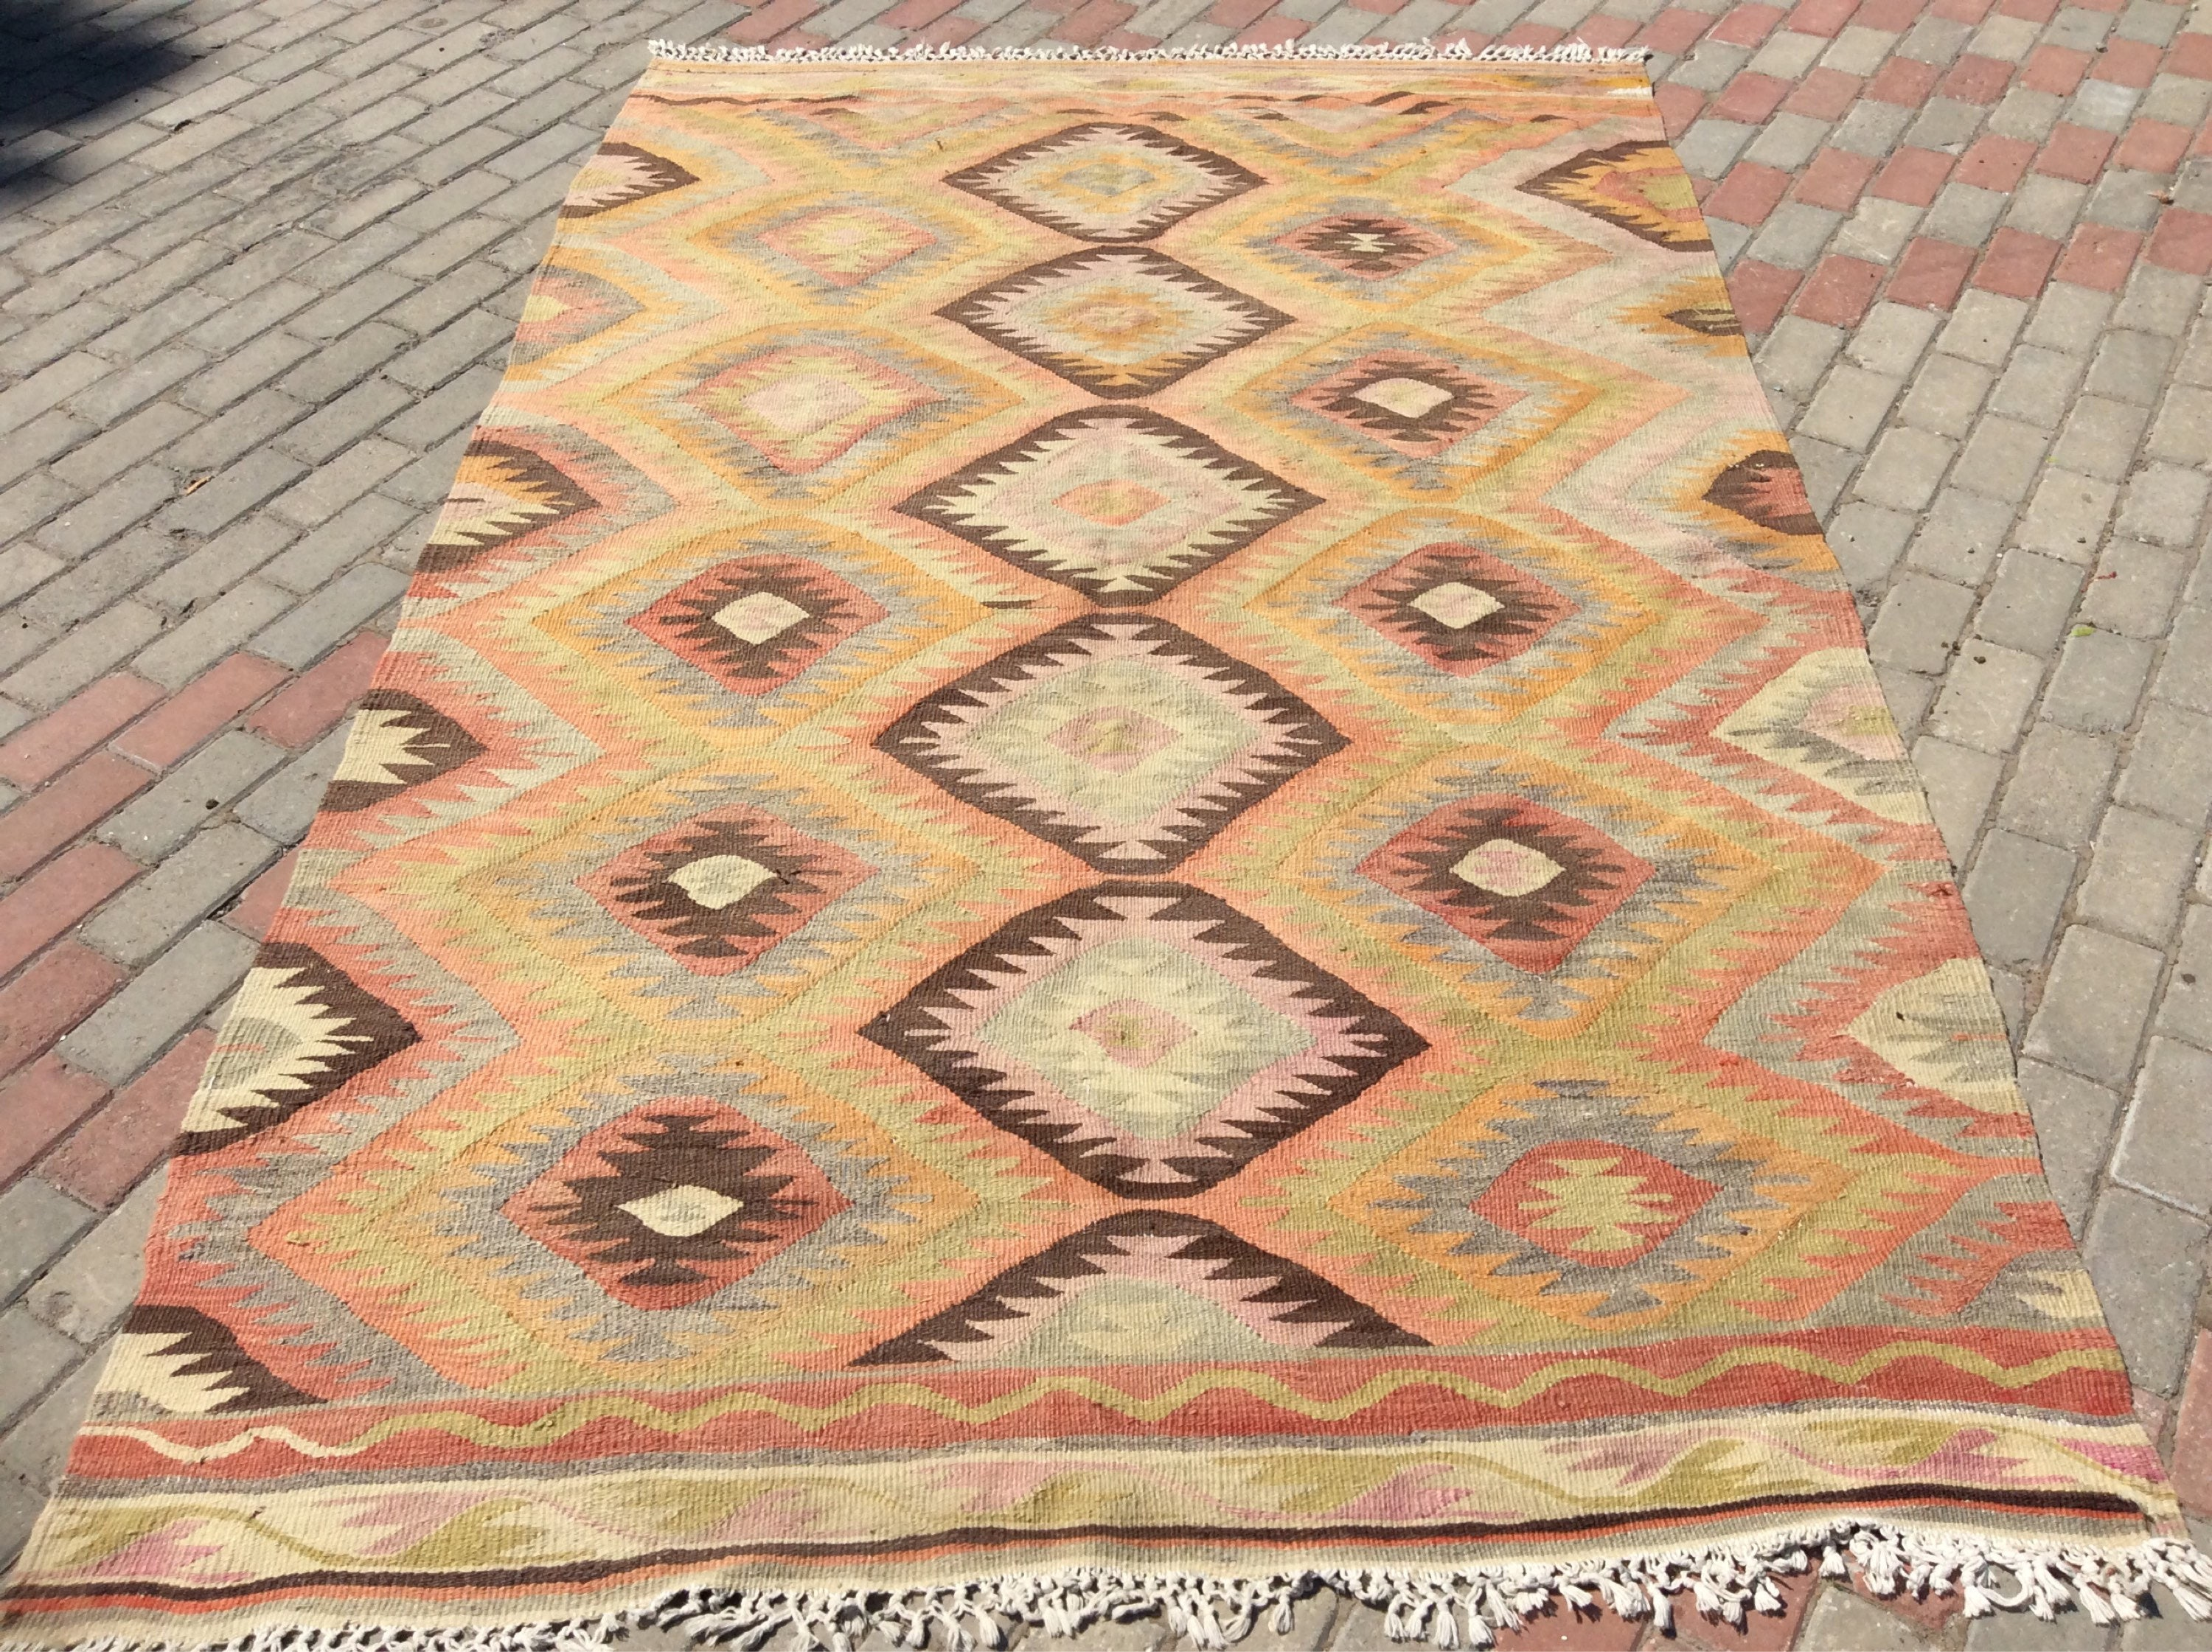 fringes wool vegetable turkey turkish dyed the pin woven rugs rug hand be kilim removed can konya spun in request new area and upon with